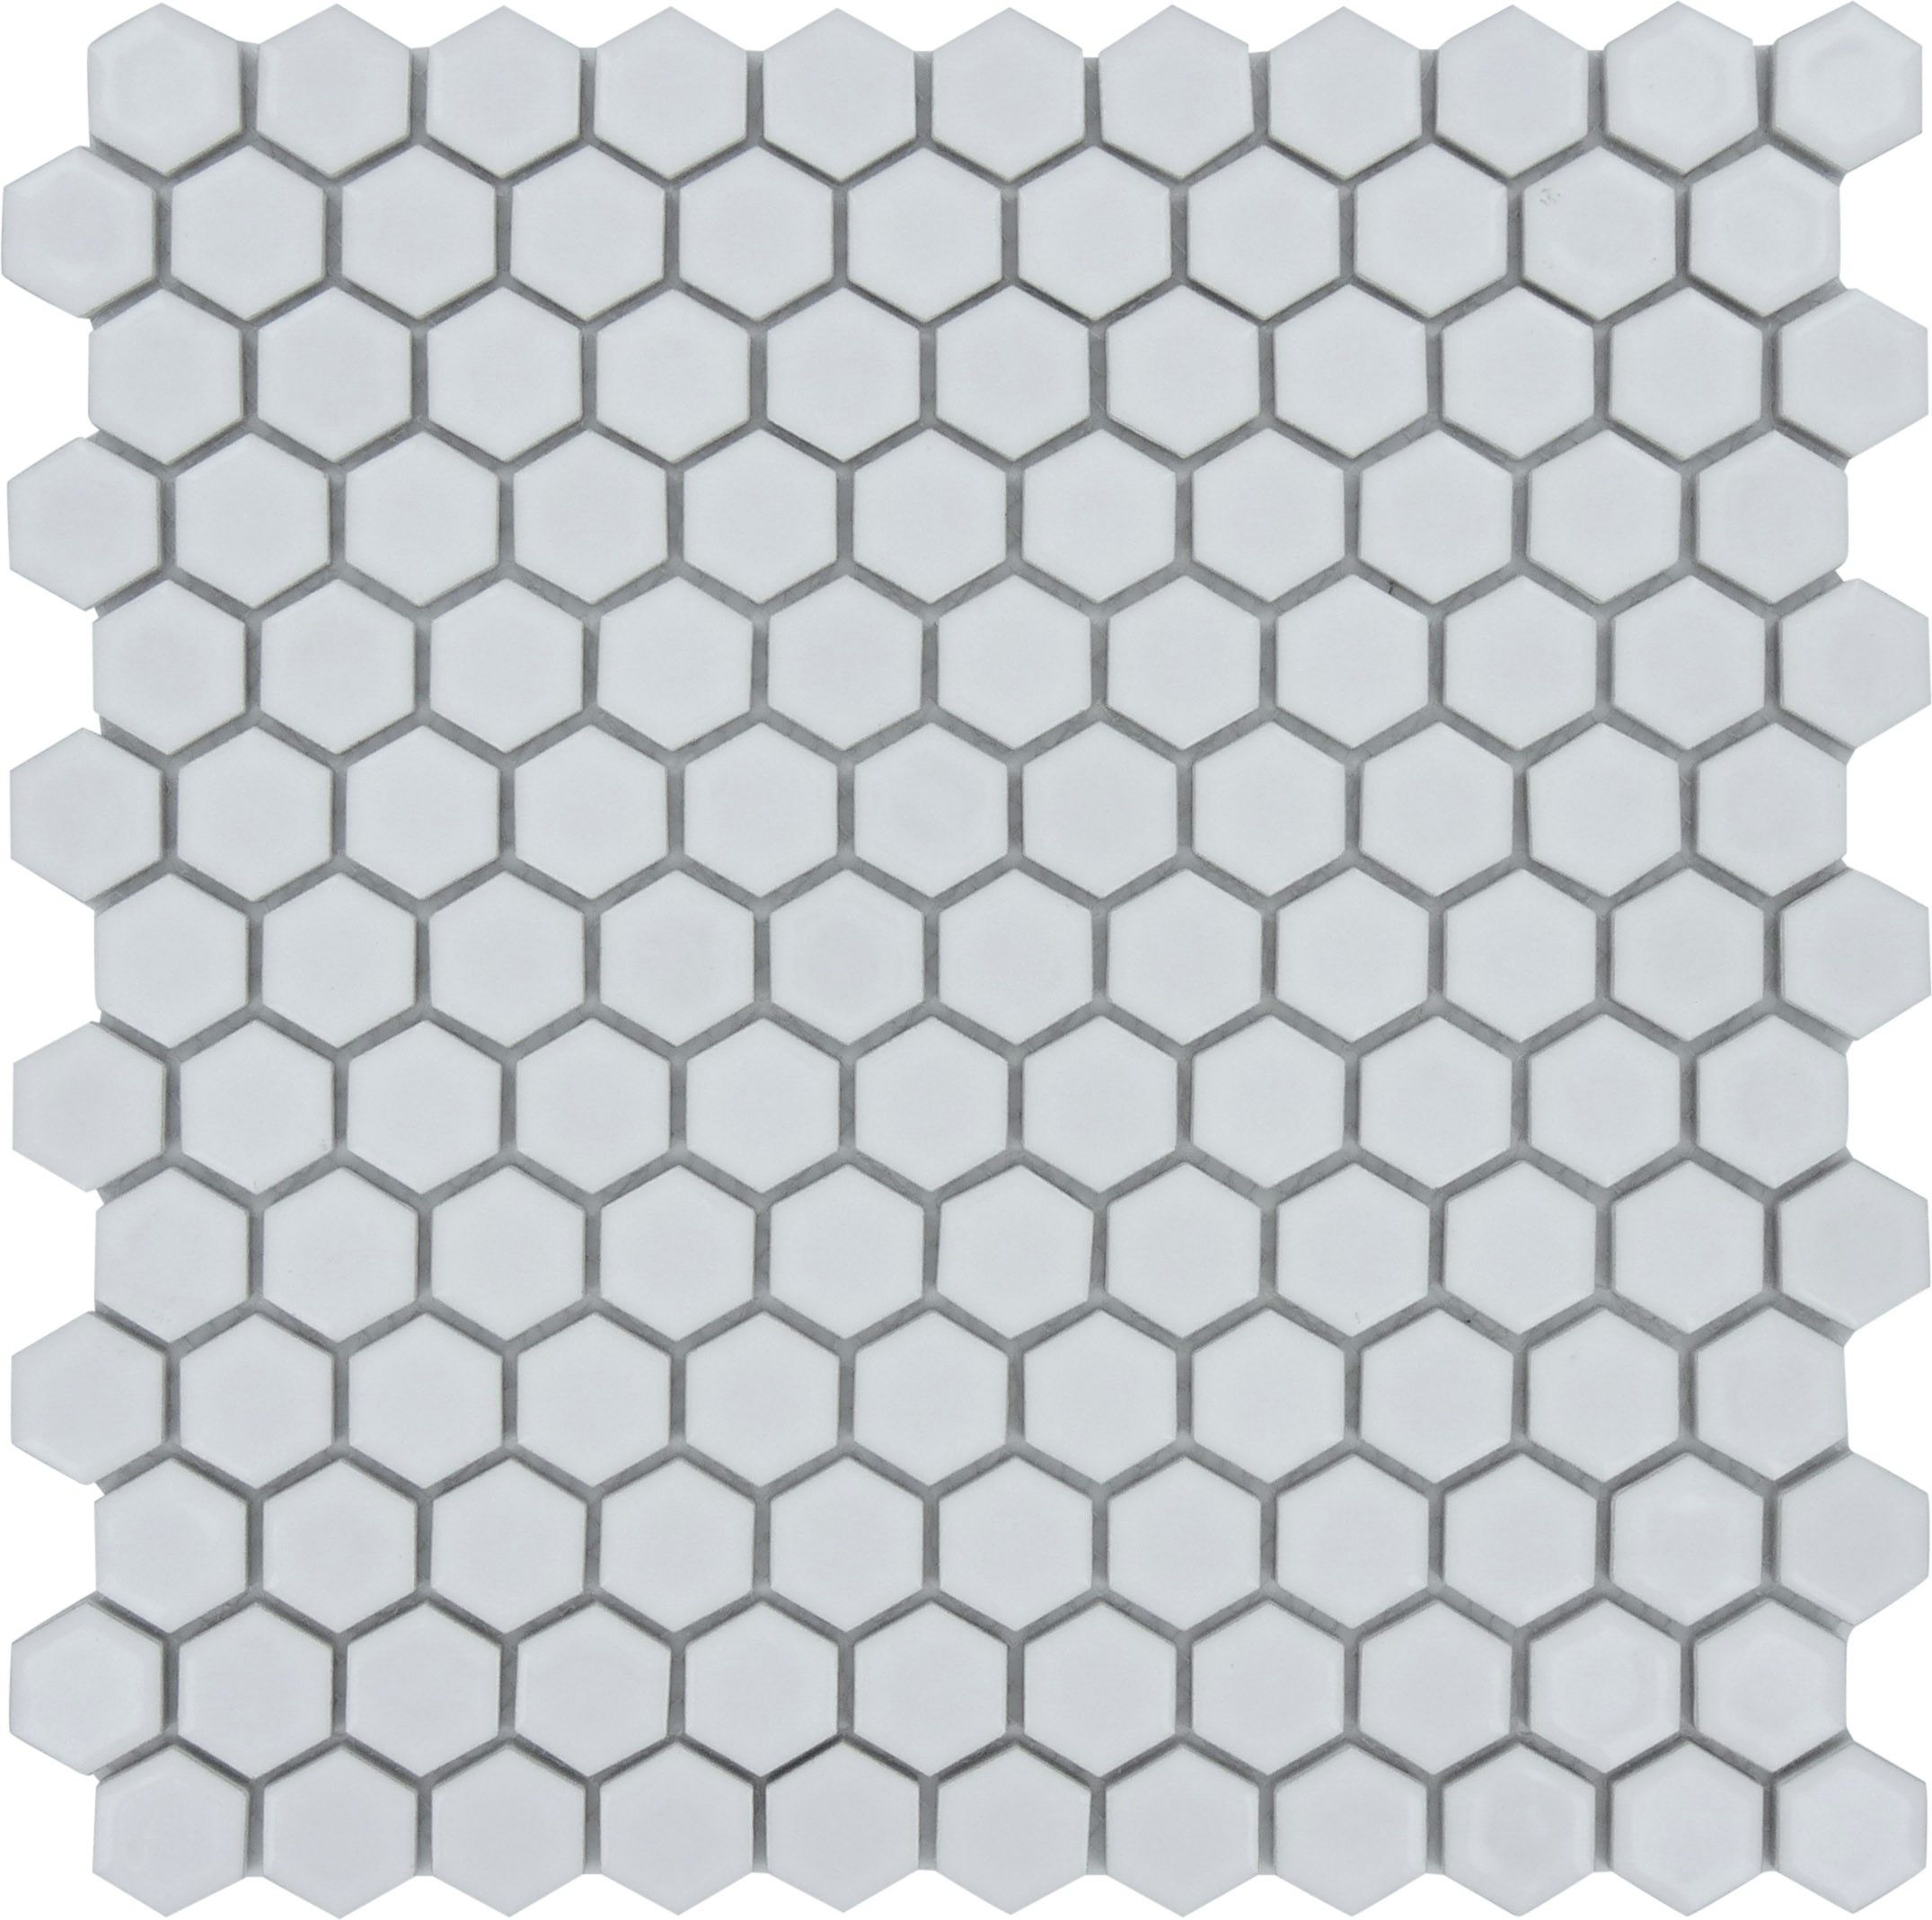 1 Hexagon Pattern Traditional Tile Portland By Pratt And Larson Ceramics Traditional Bathroom Tile Tile Bathroom Patterned Floor Tiles